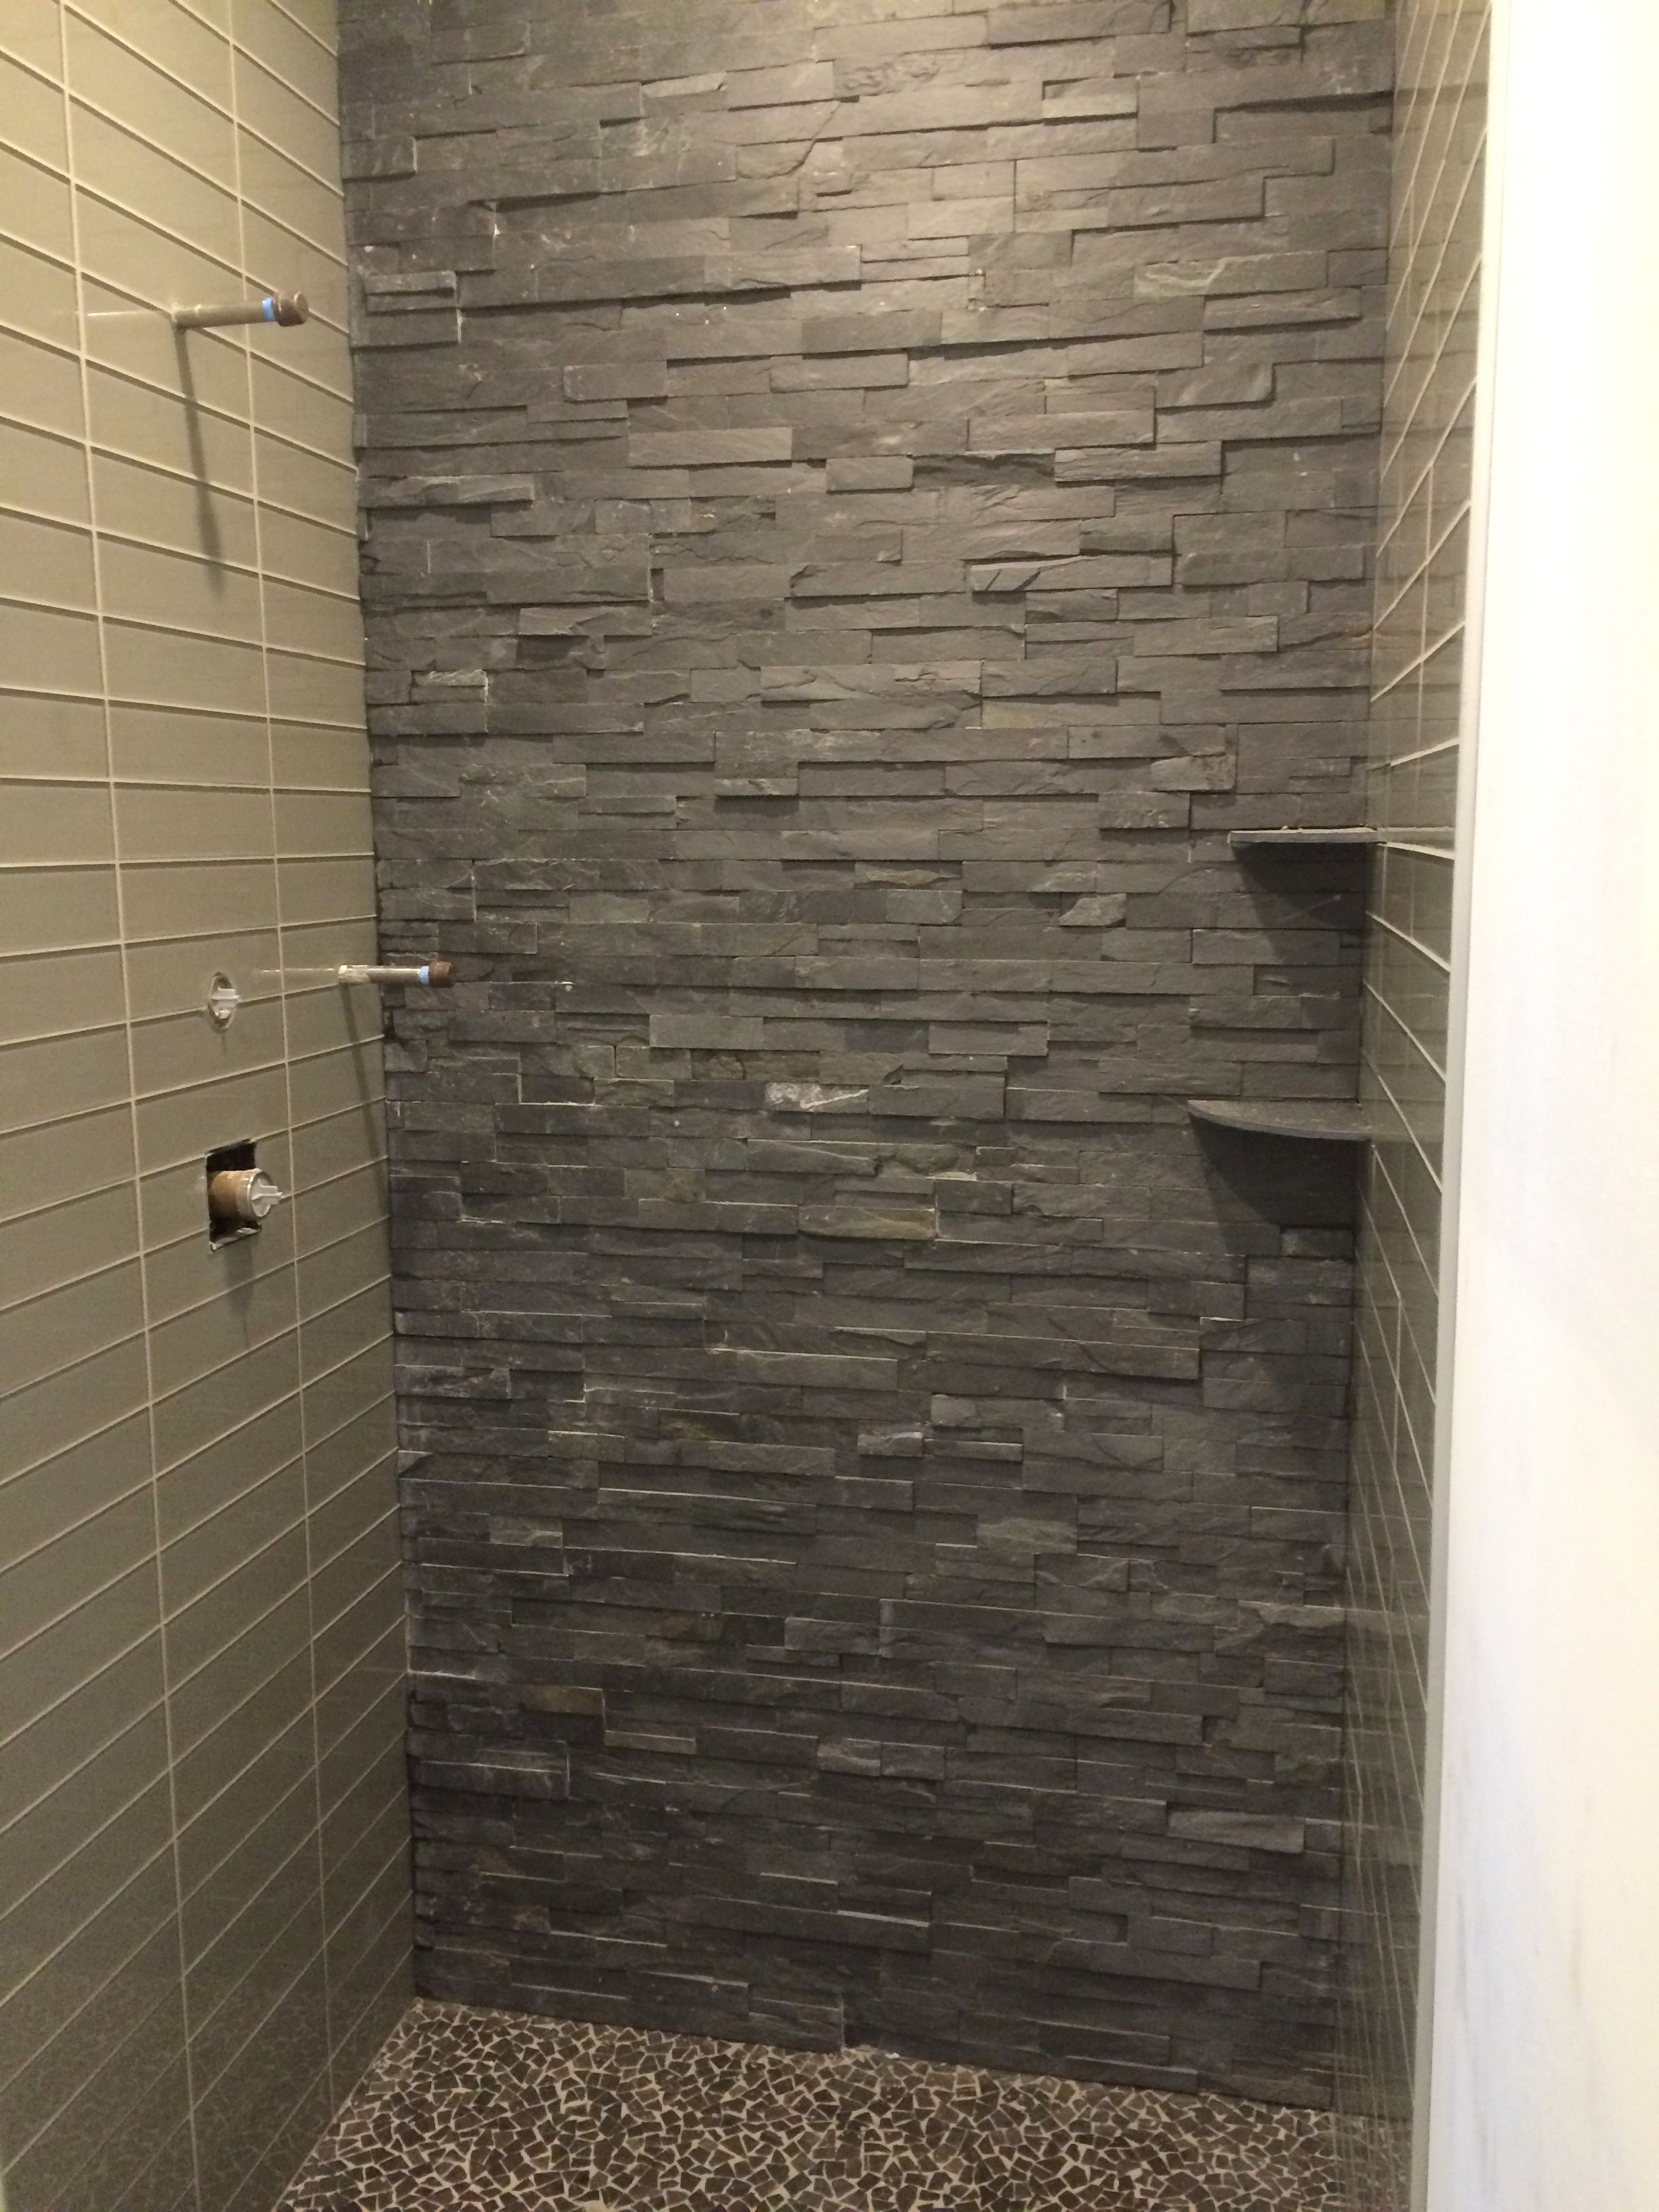 Ledgerstone And Subway Tile Walk In Shower With Pebble Floor And Corner  Shelves. Tile